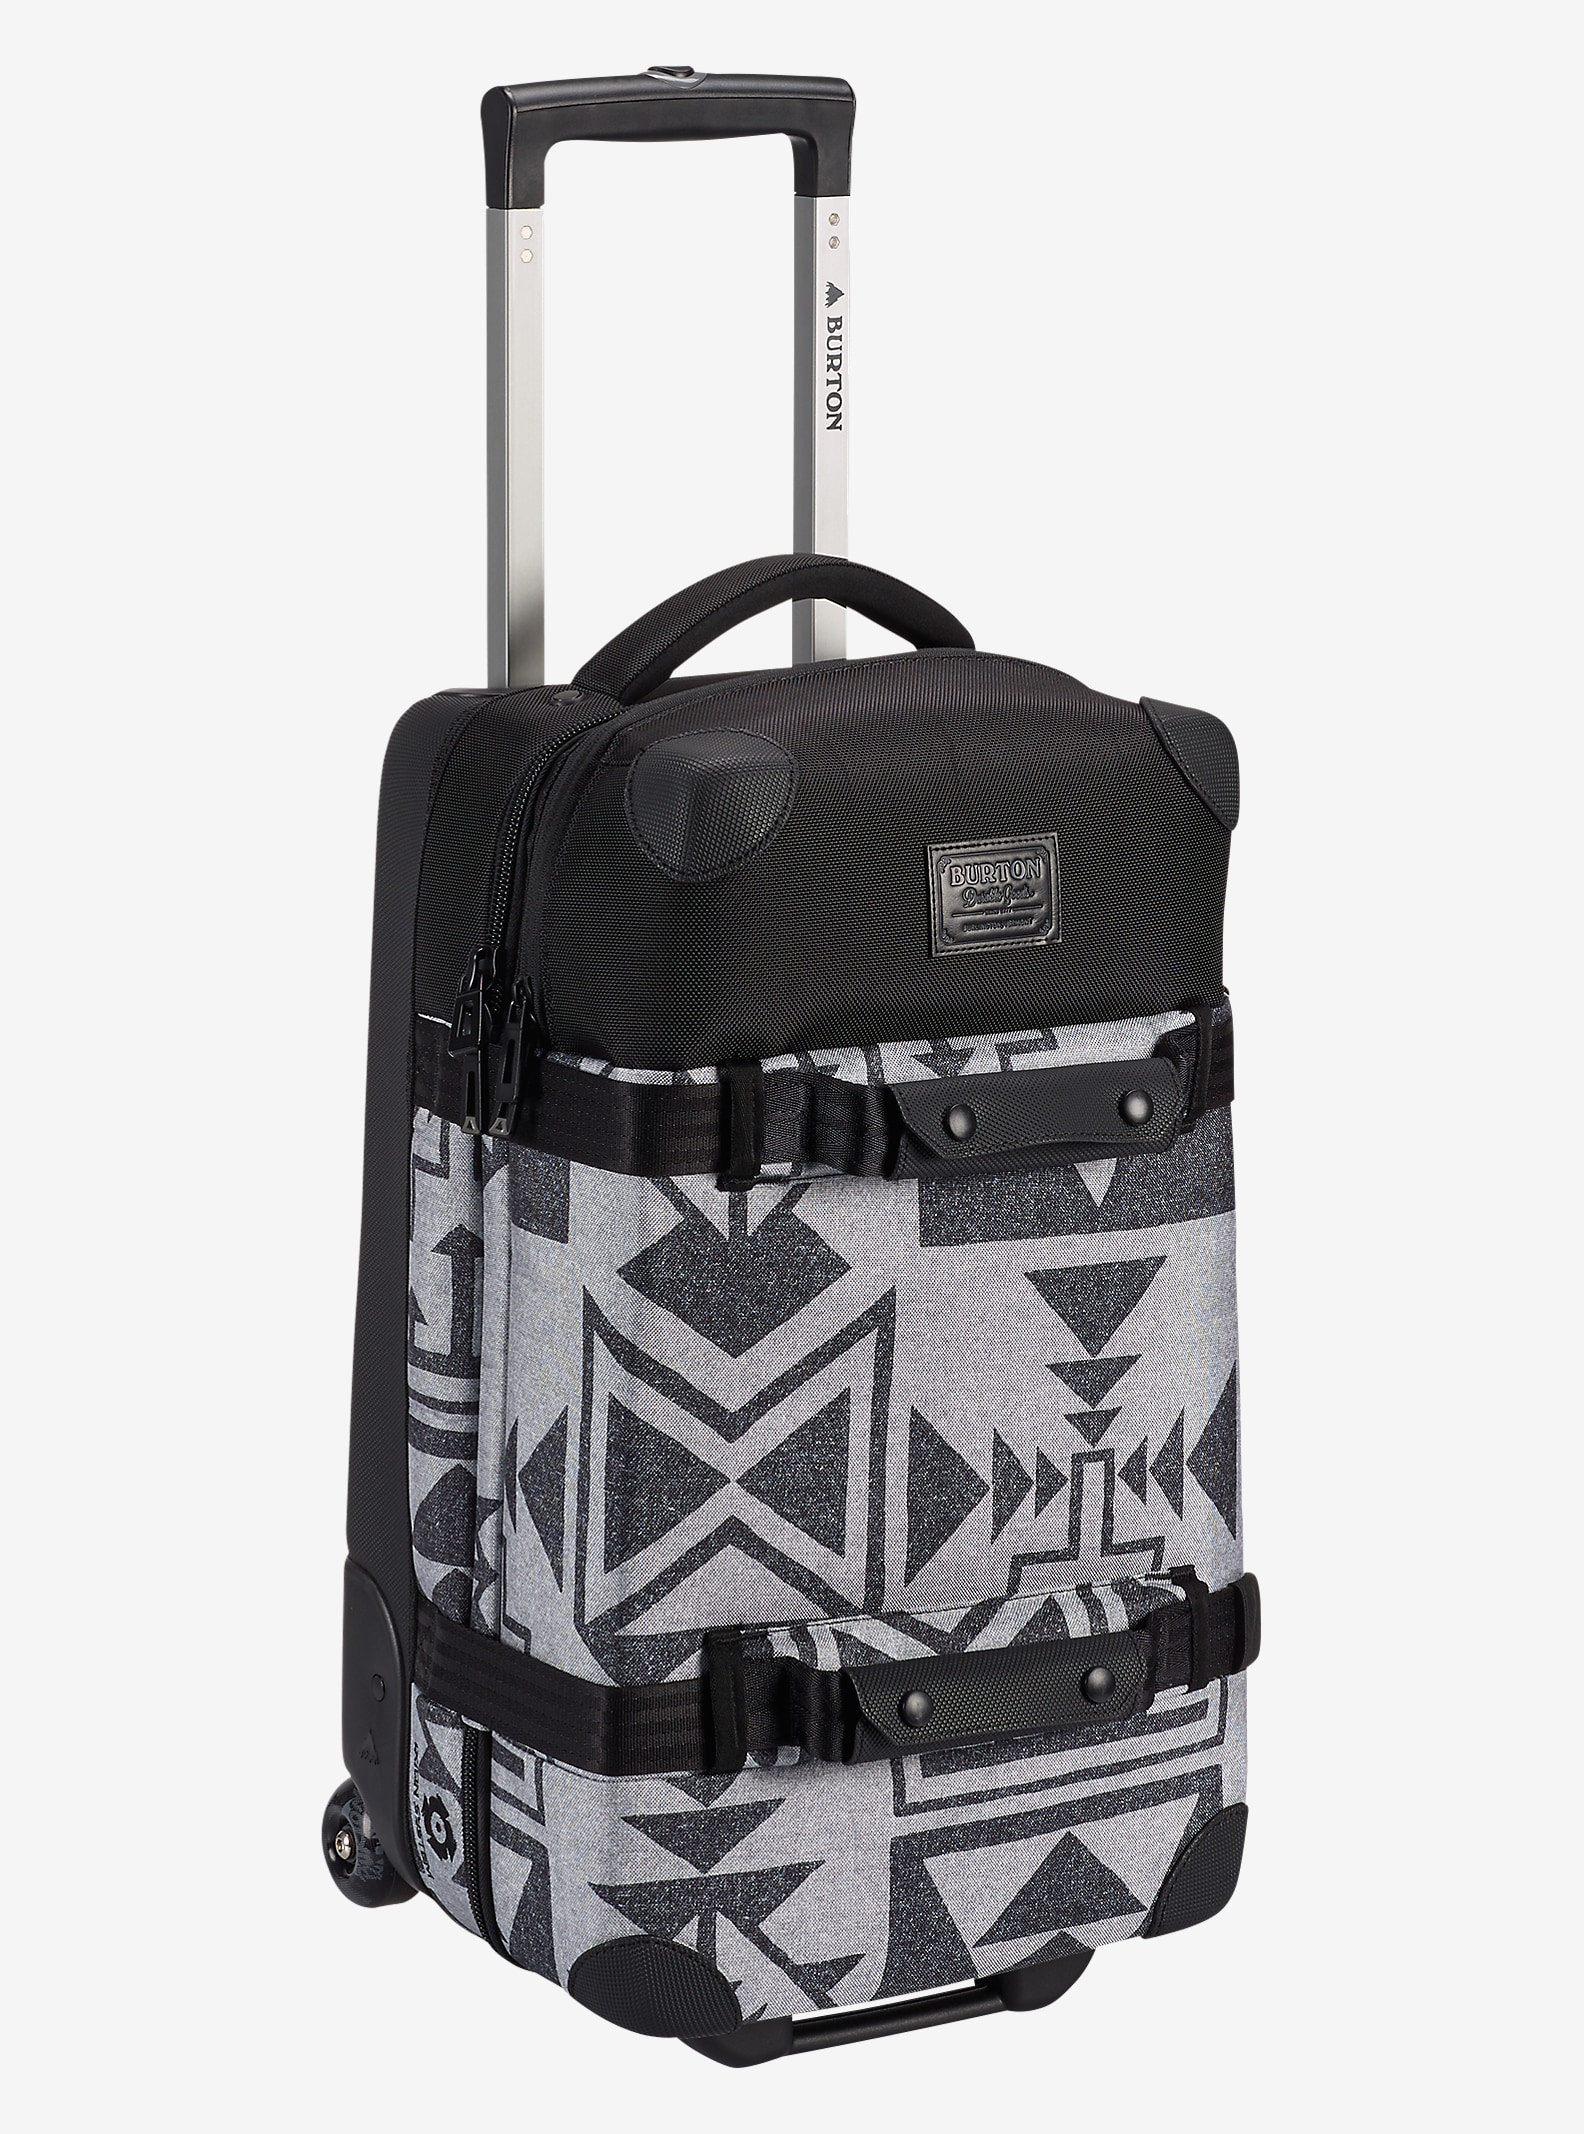 Burton Wheelie Flight Deck Travel Bag shown in Neu Nordic Print